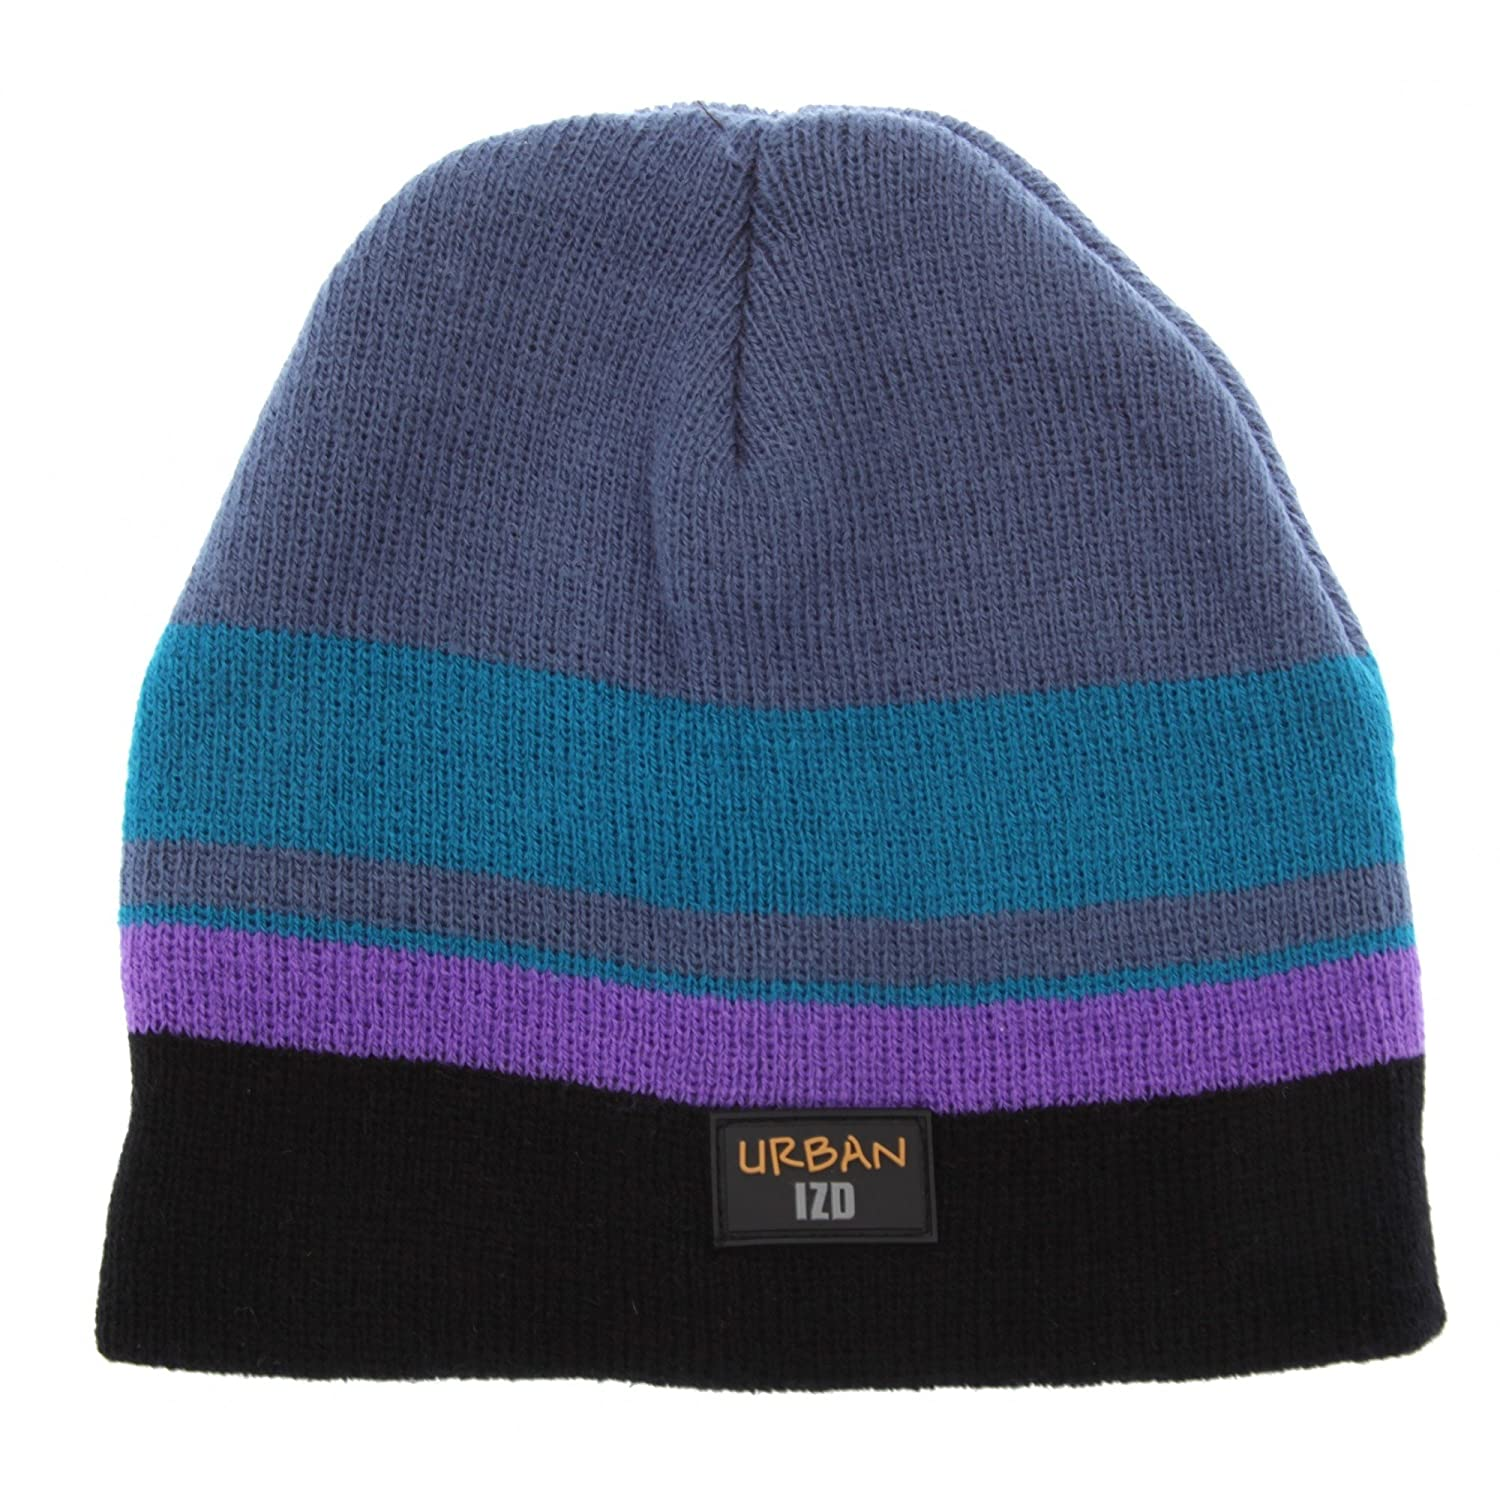 Boys Childrens Striped Thermal Winter Beanie Hat